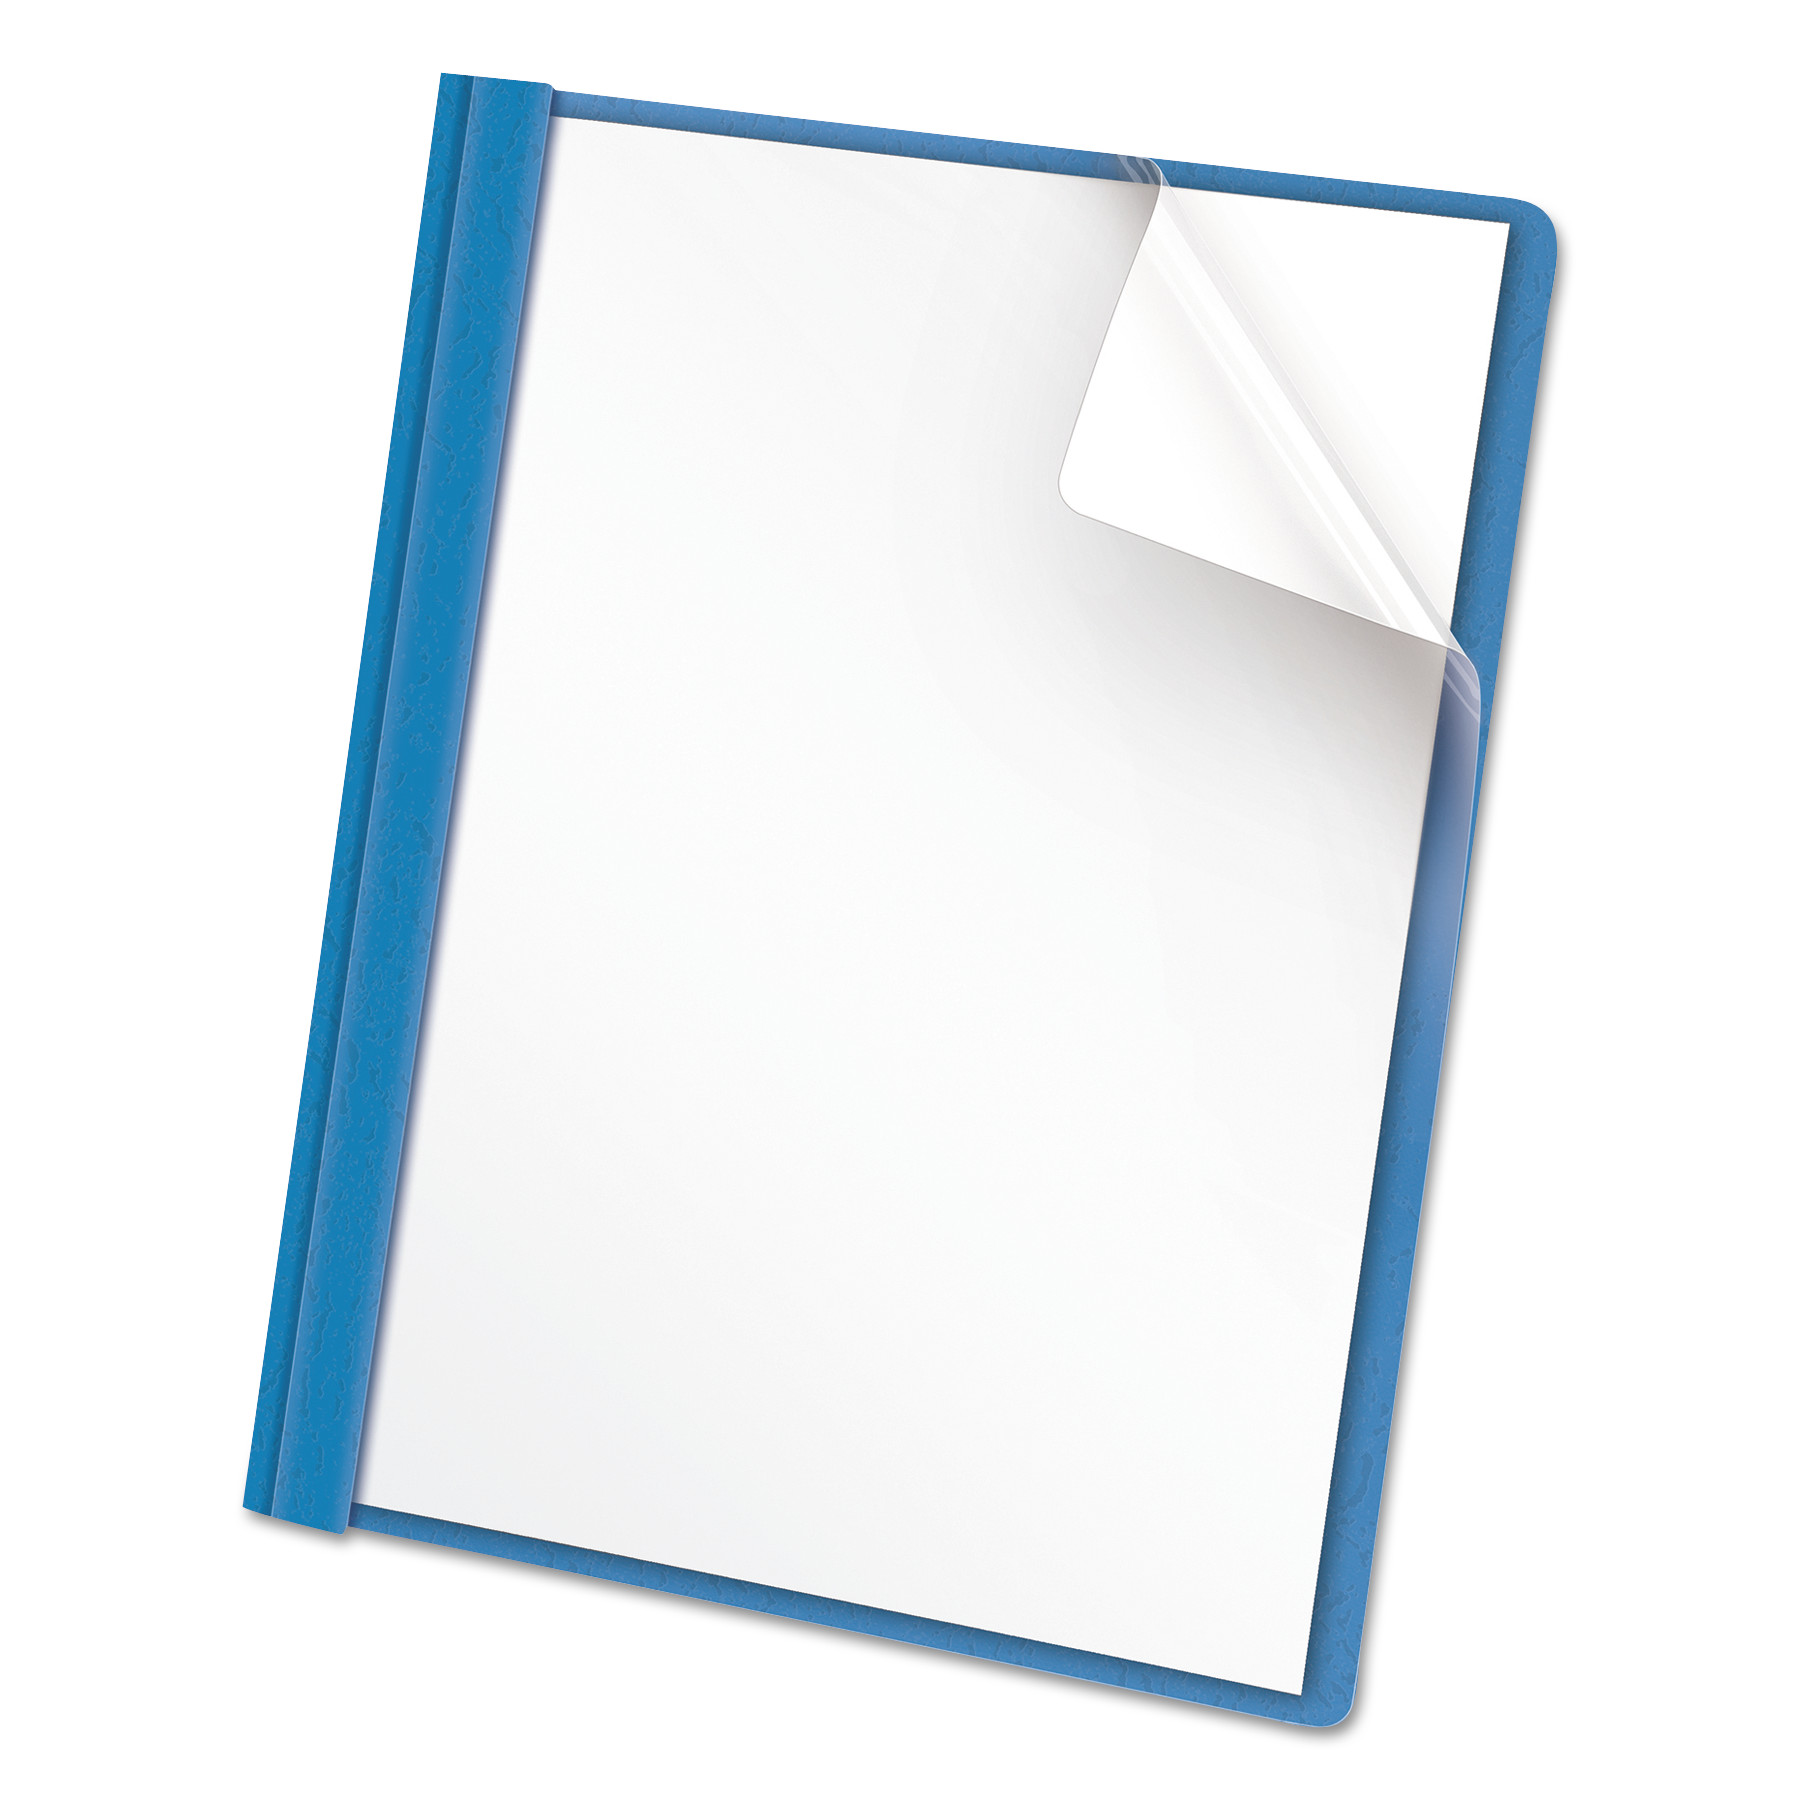 Clear Front Report Cover, Tang Fasteners, Letter Size, Light Blue, 25 Box -UNV57121 by Universal Office Products